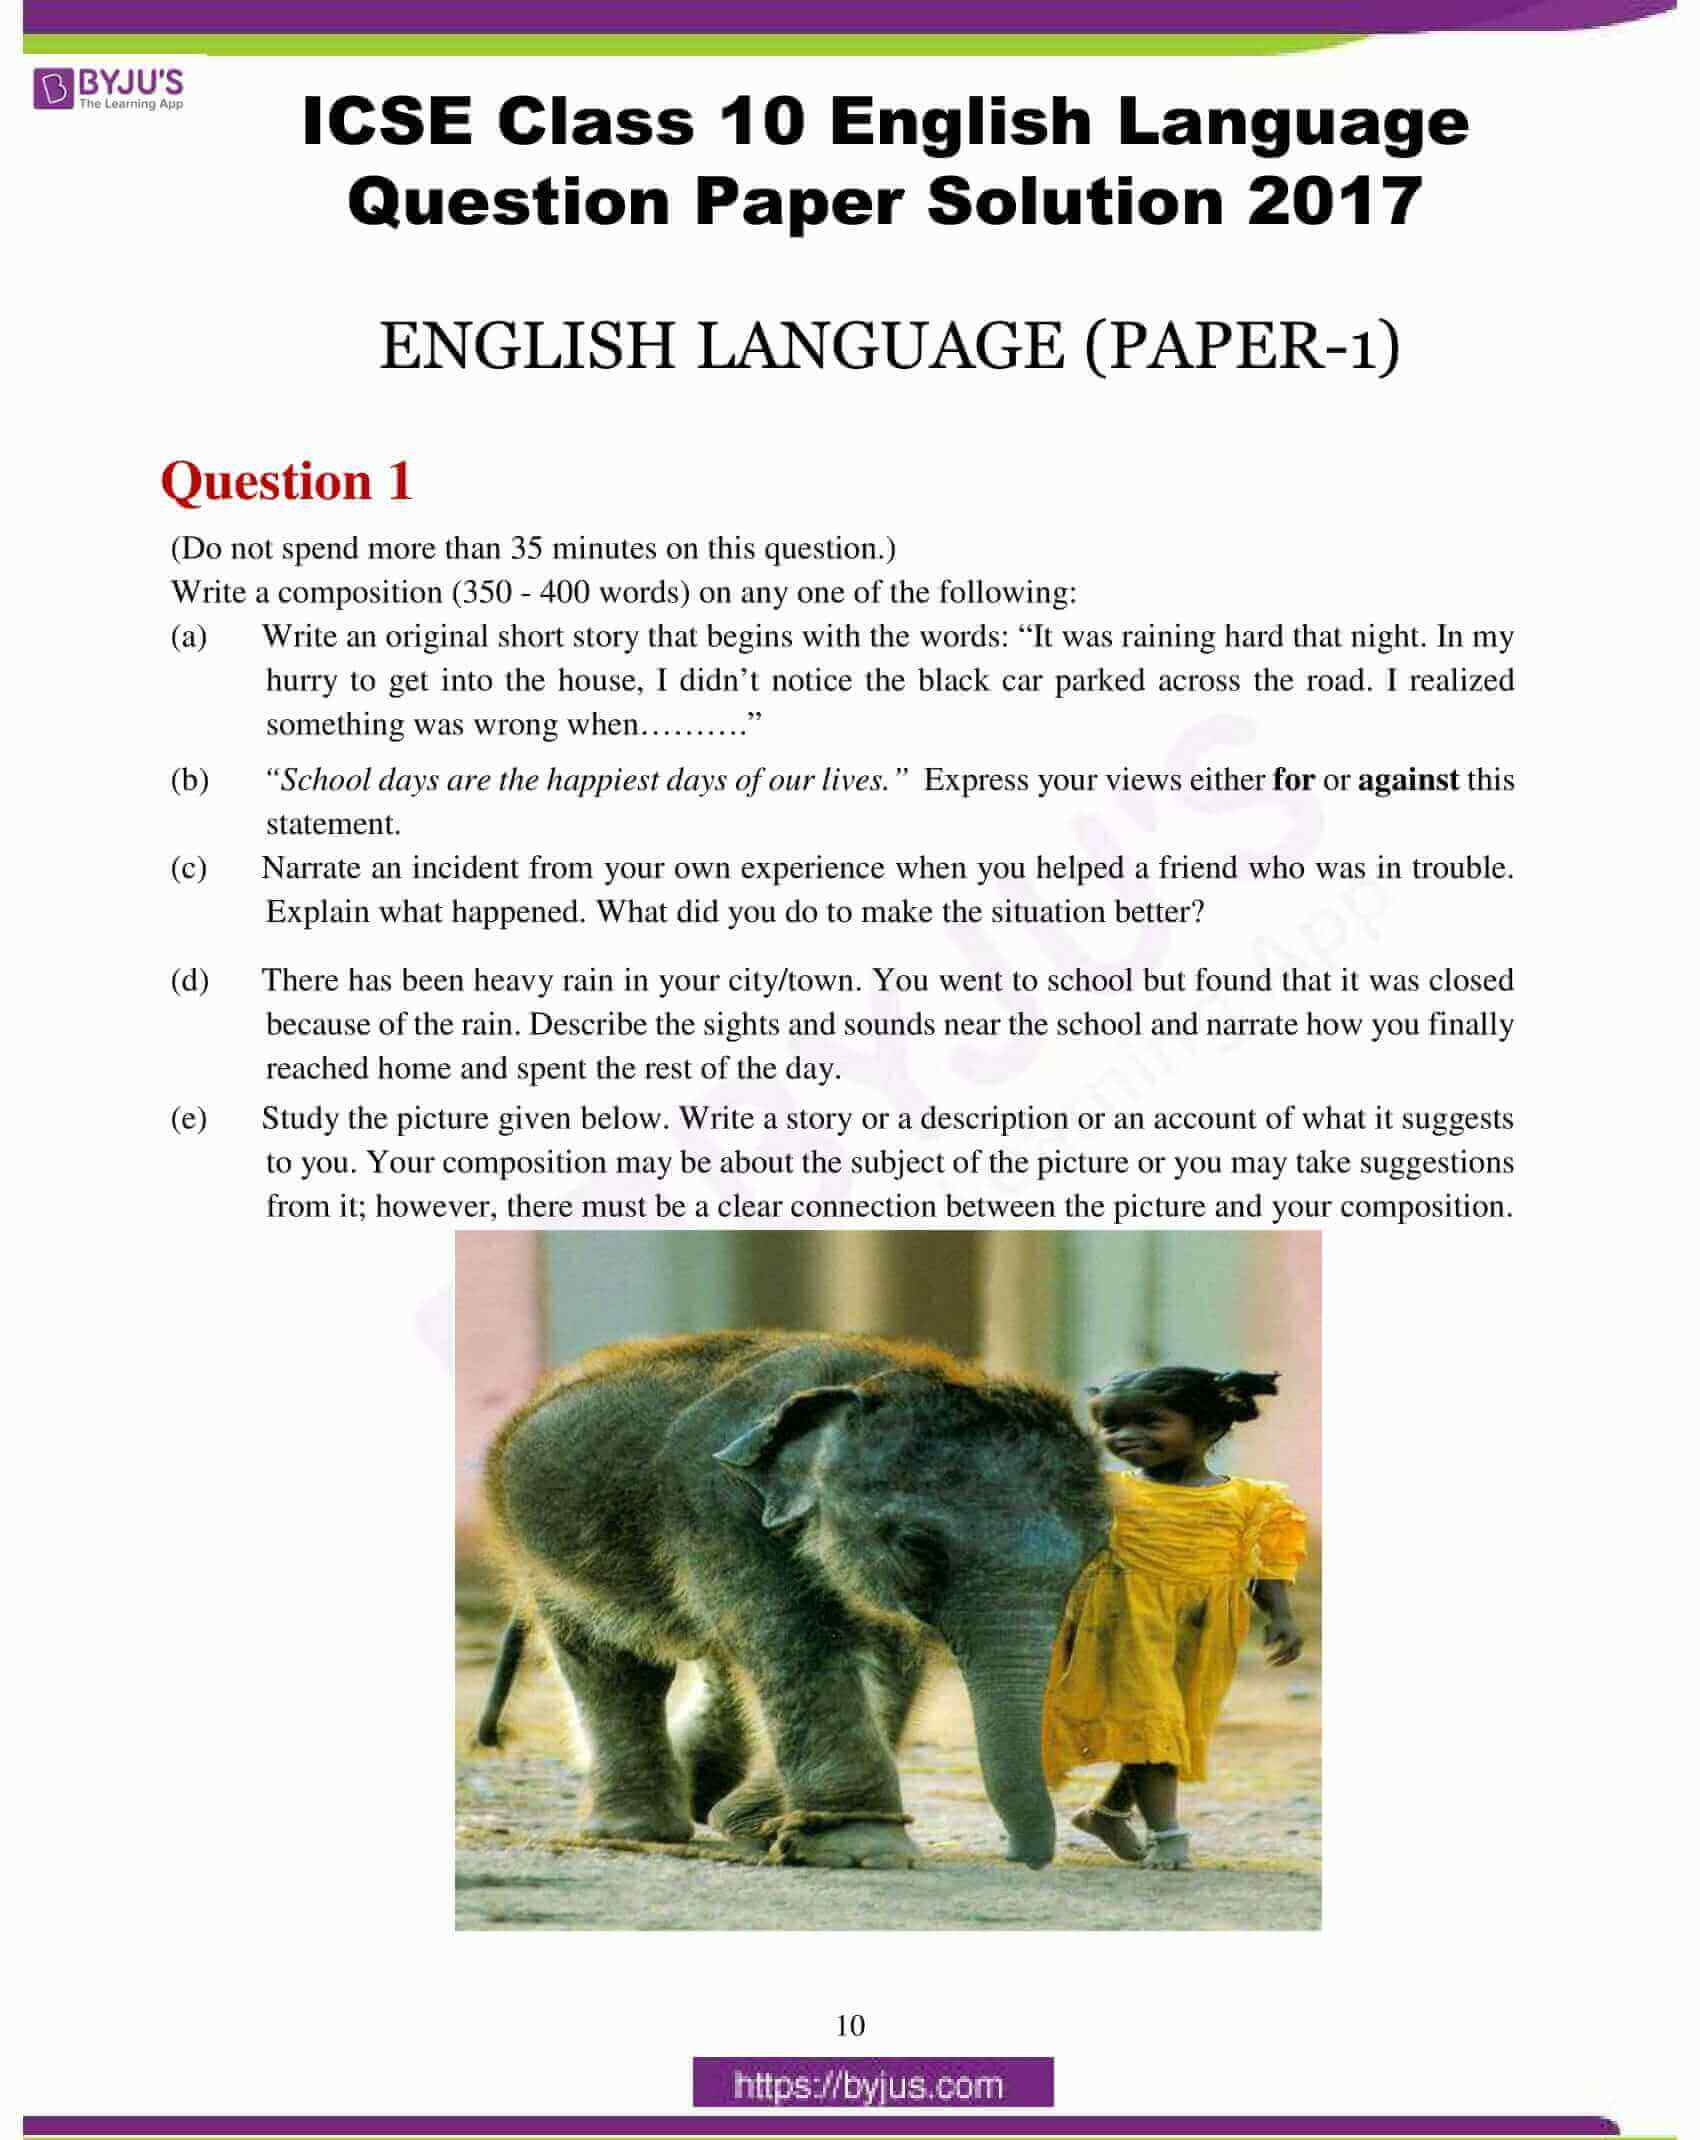 icse class 10 eng lan question paper solution 2017 01